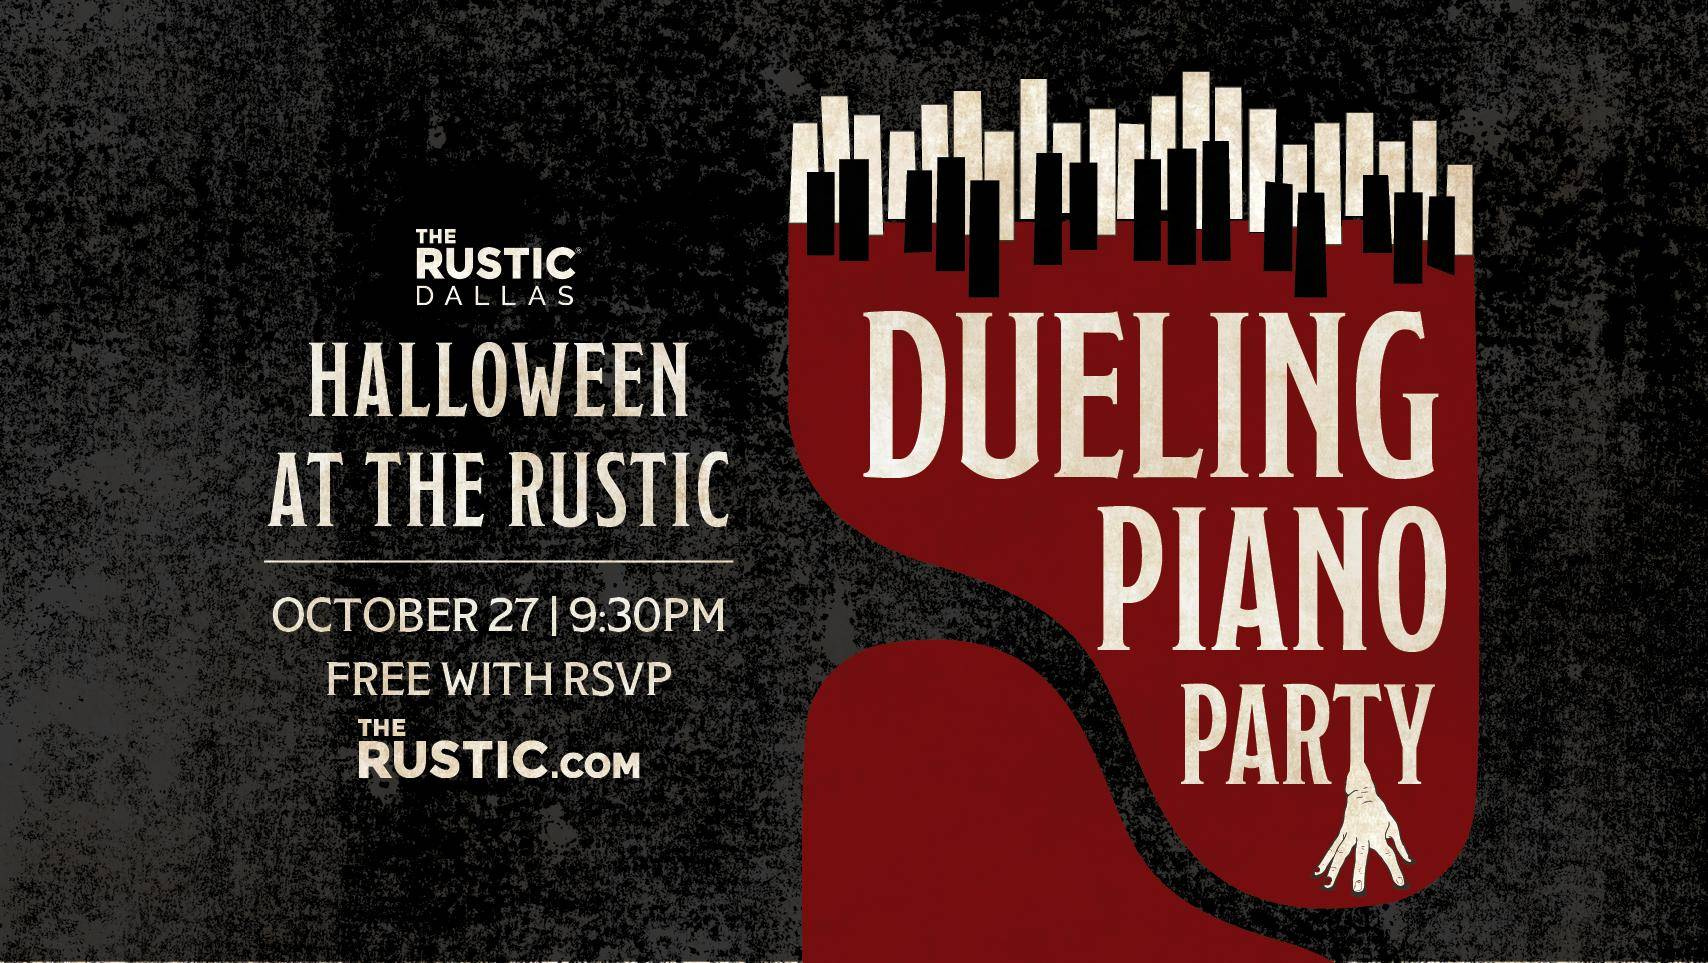 halloween at the rustic featuring dueling piano party - the rustic